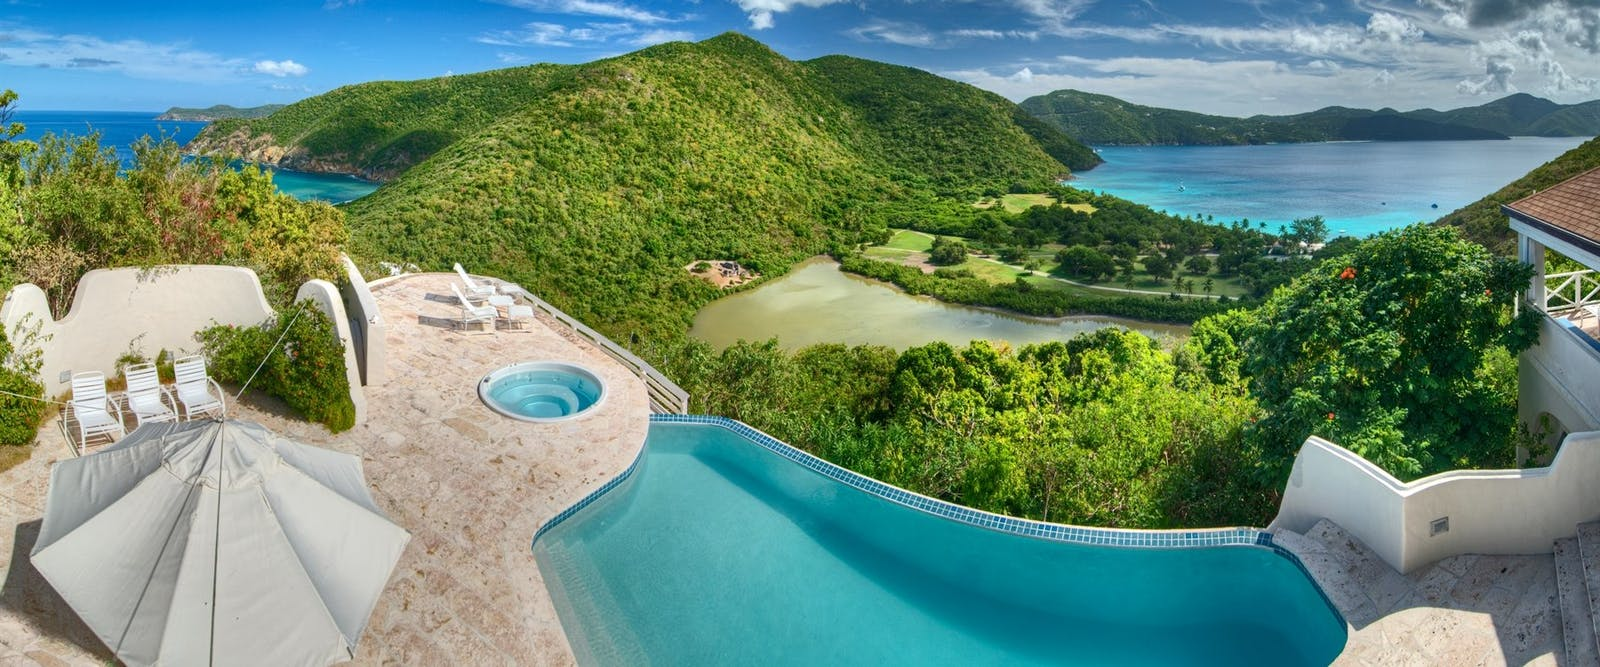 Terrace of Harbour House Villa at Guana Island, British Virgin Islands